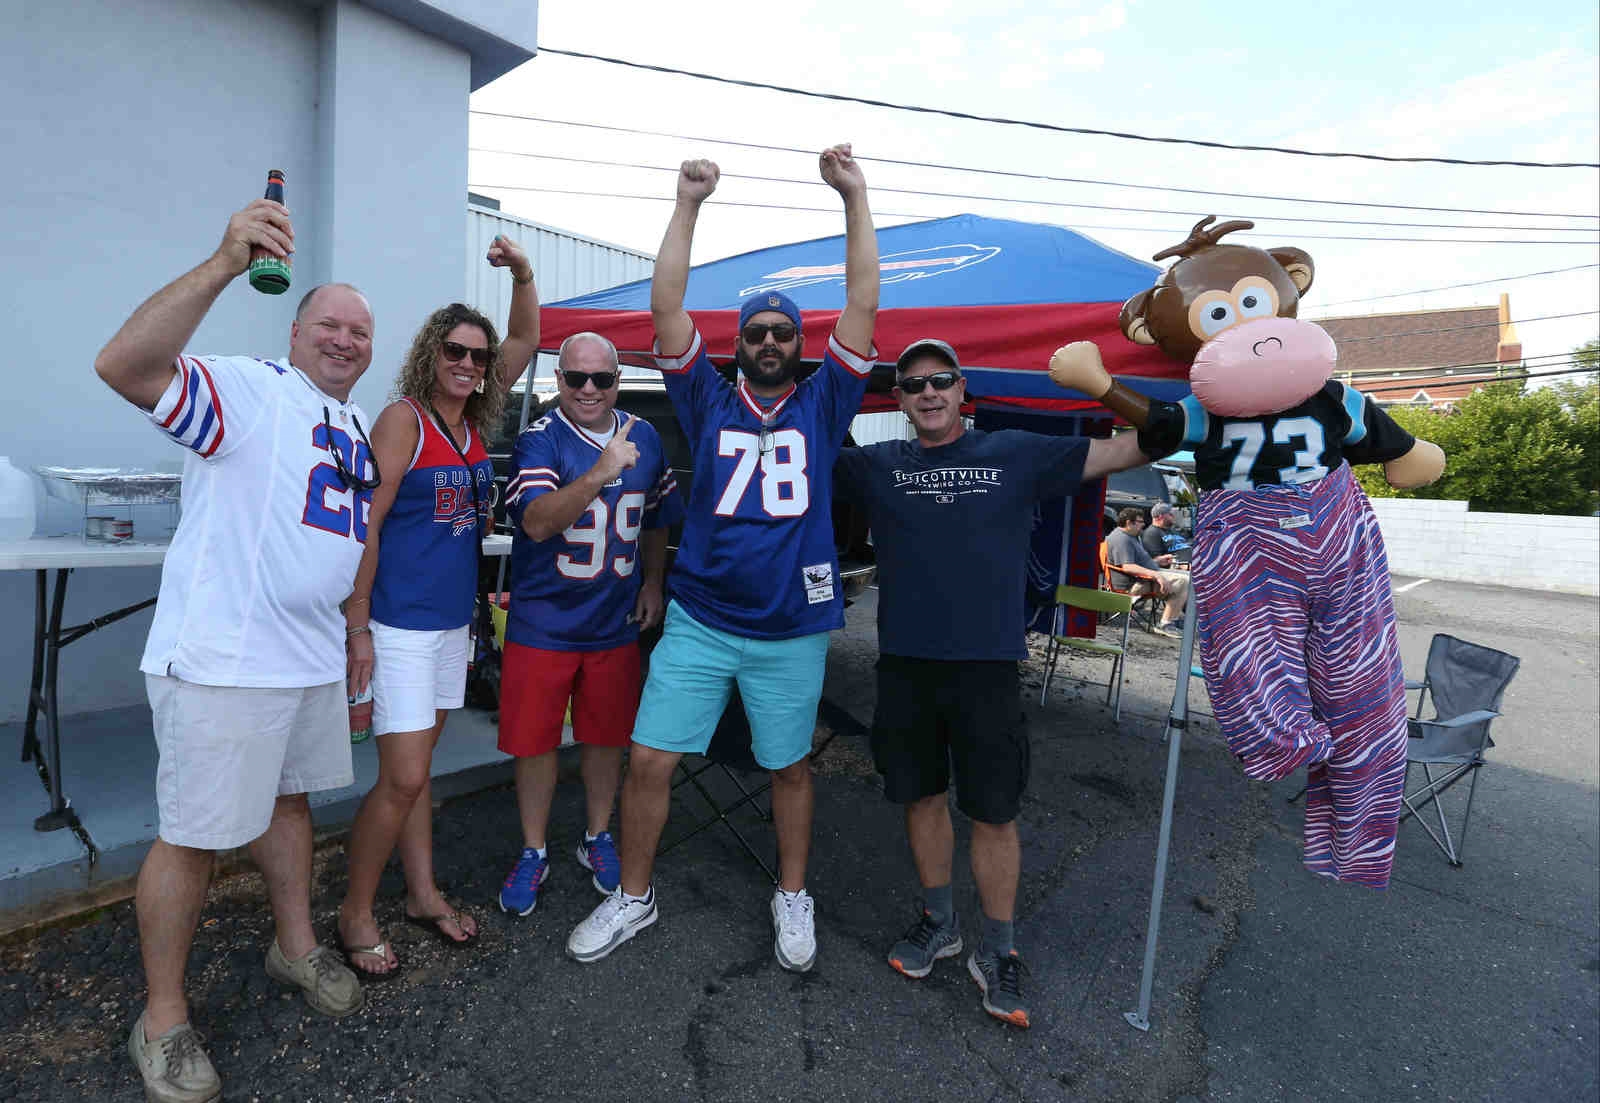 Bills fans party before the game.